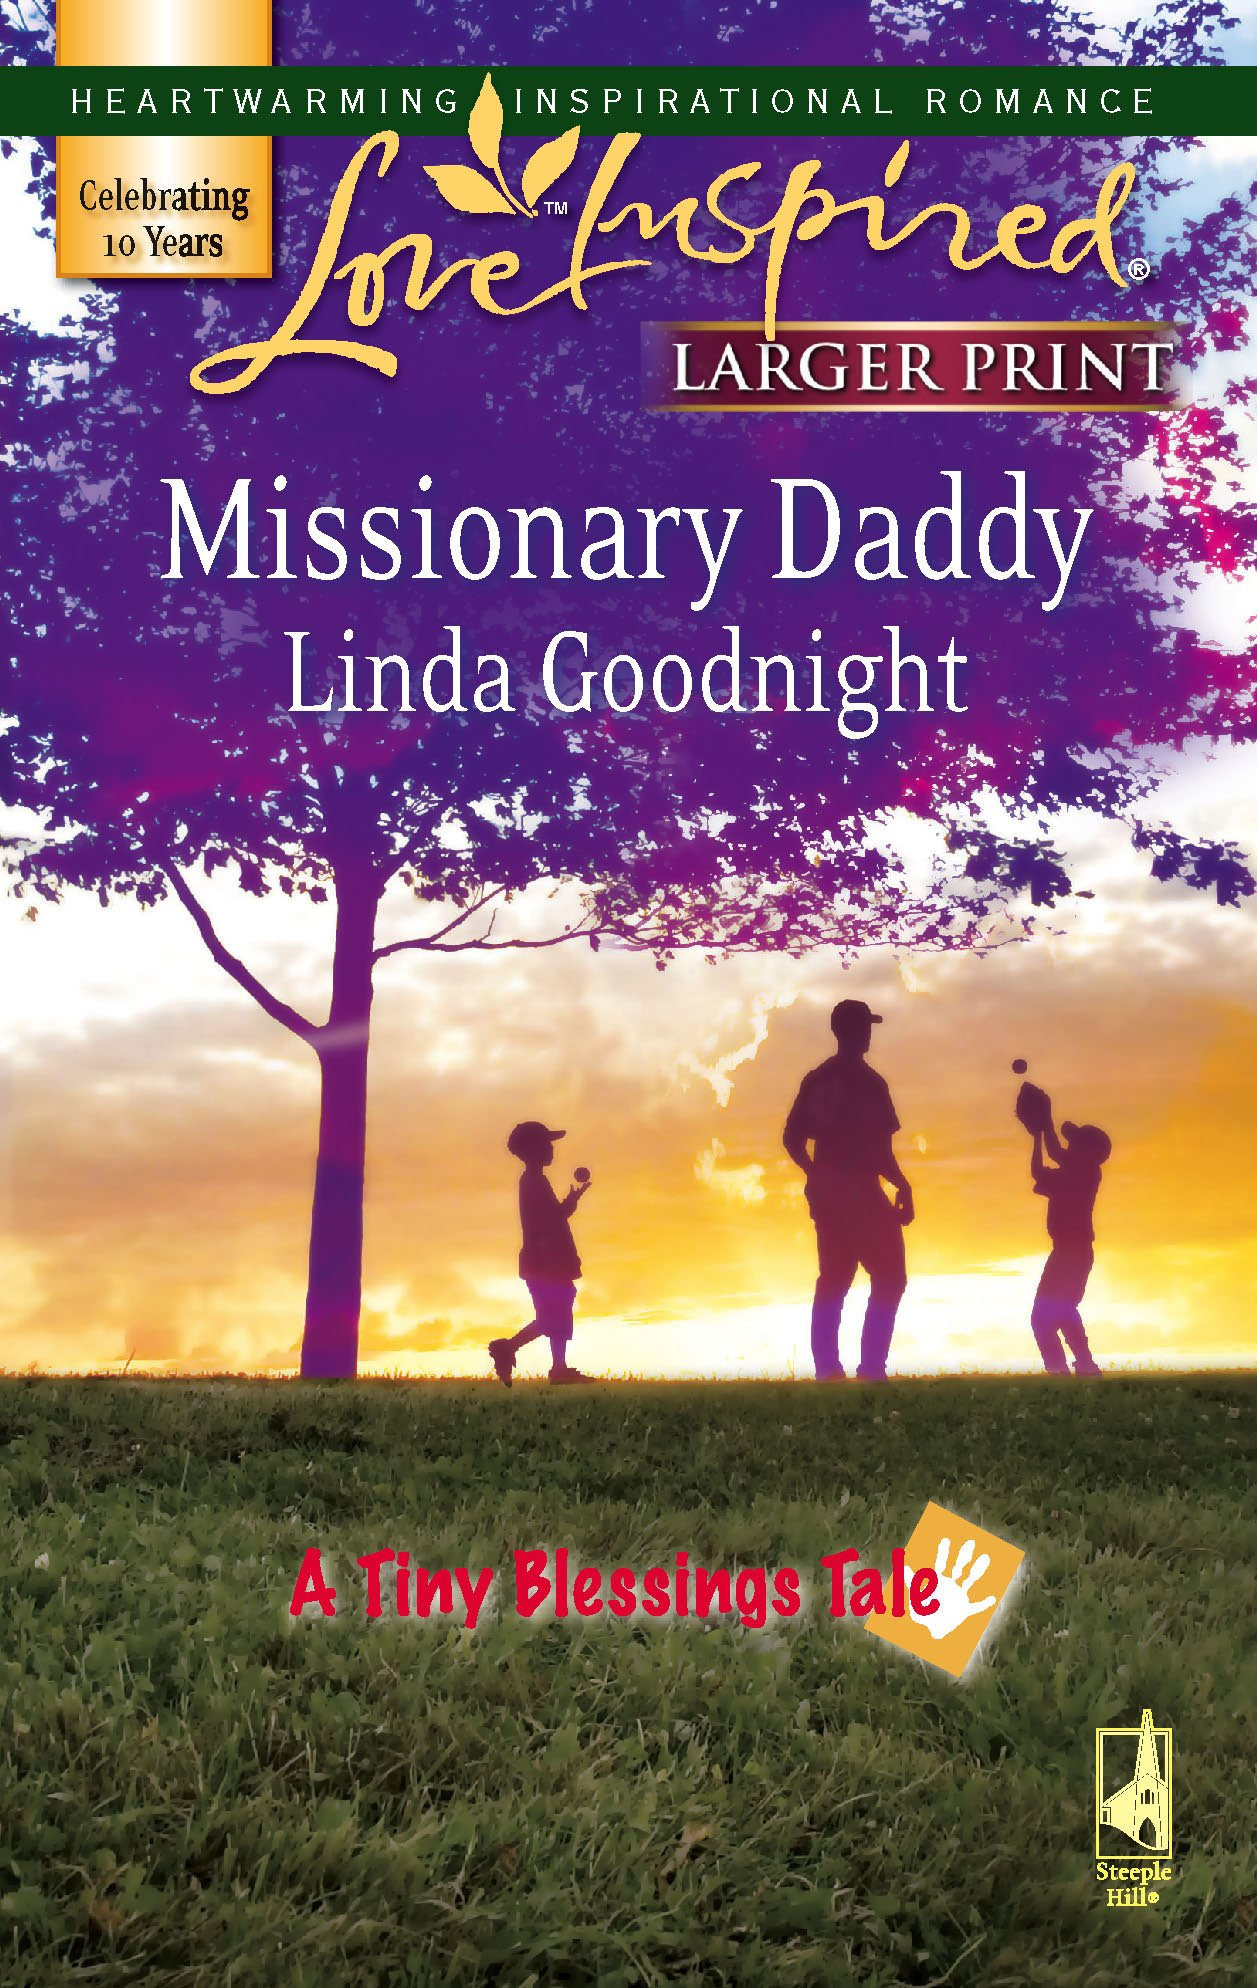 Missionary Daddy (A Tiny Blessings Tale #2) (Larger Print Love Inspired #408) pdf